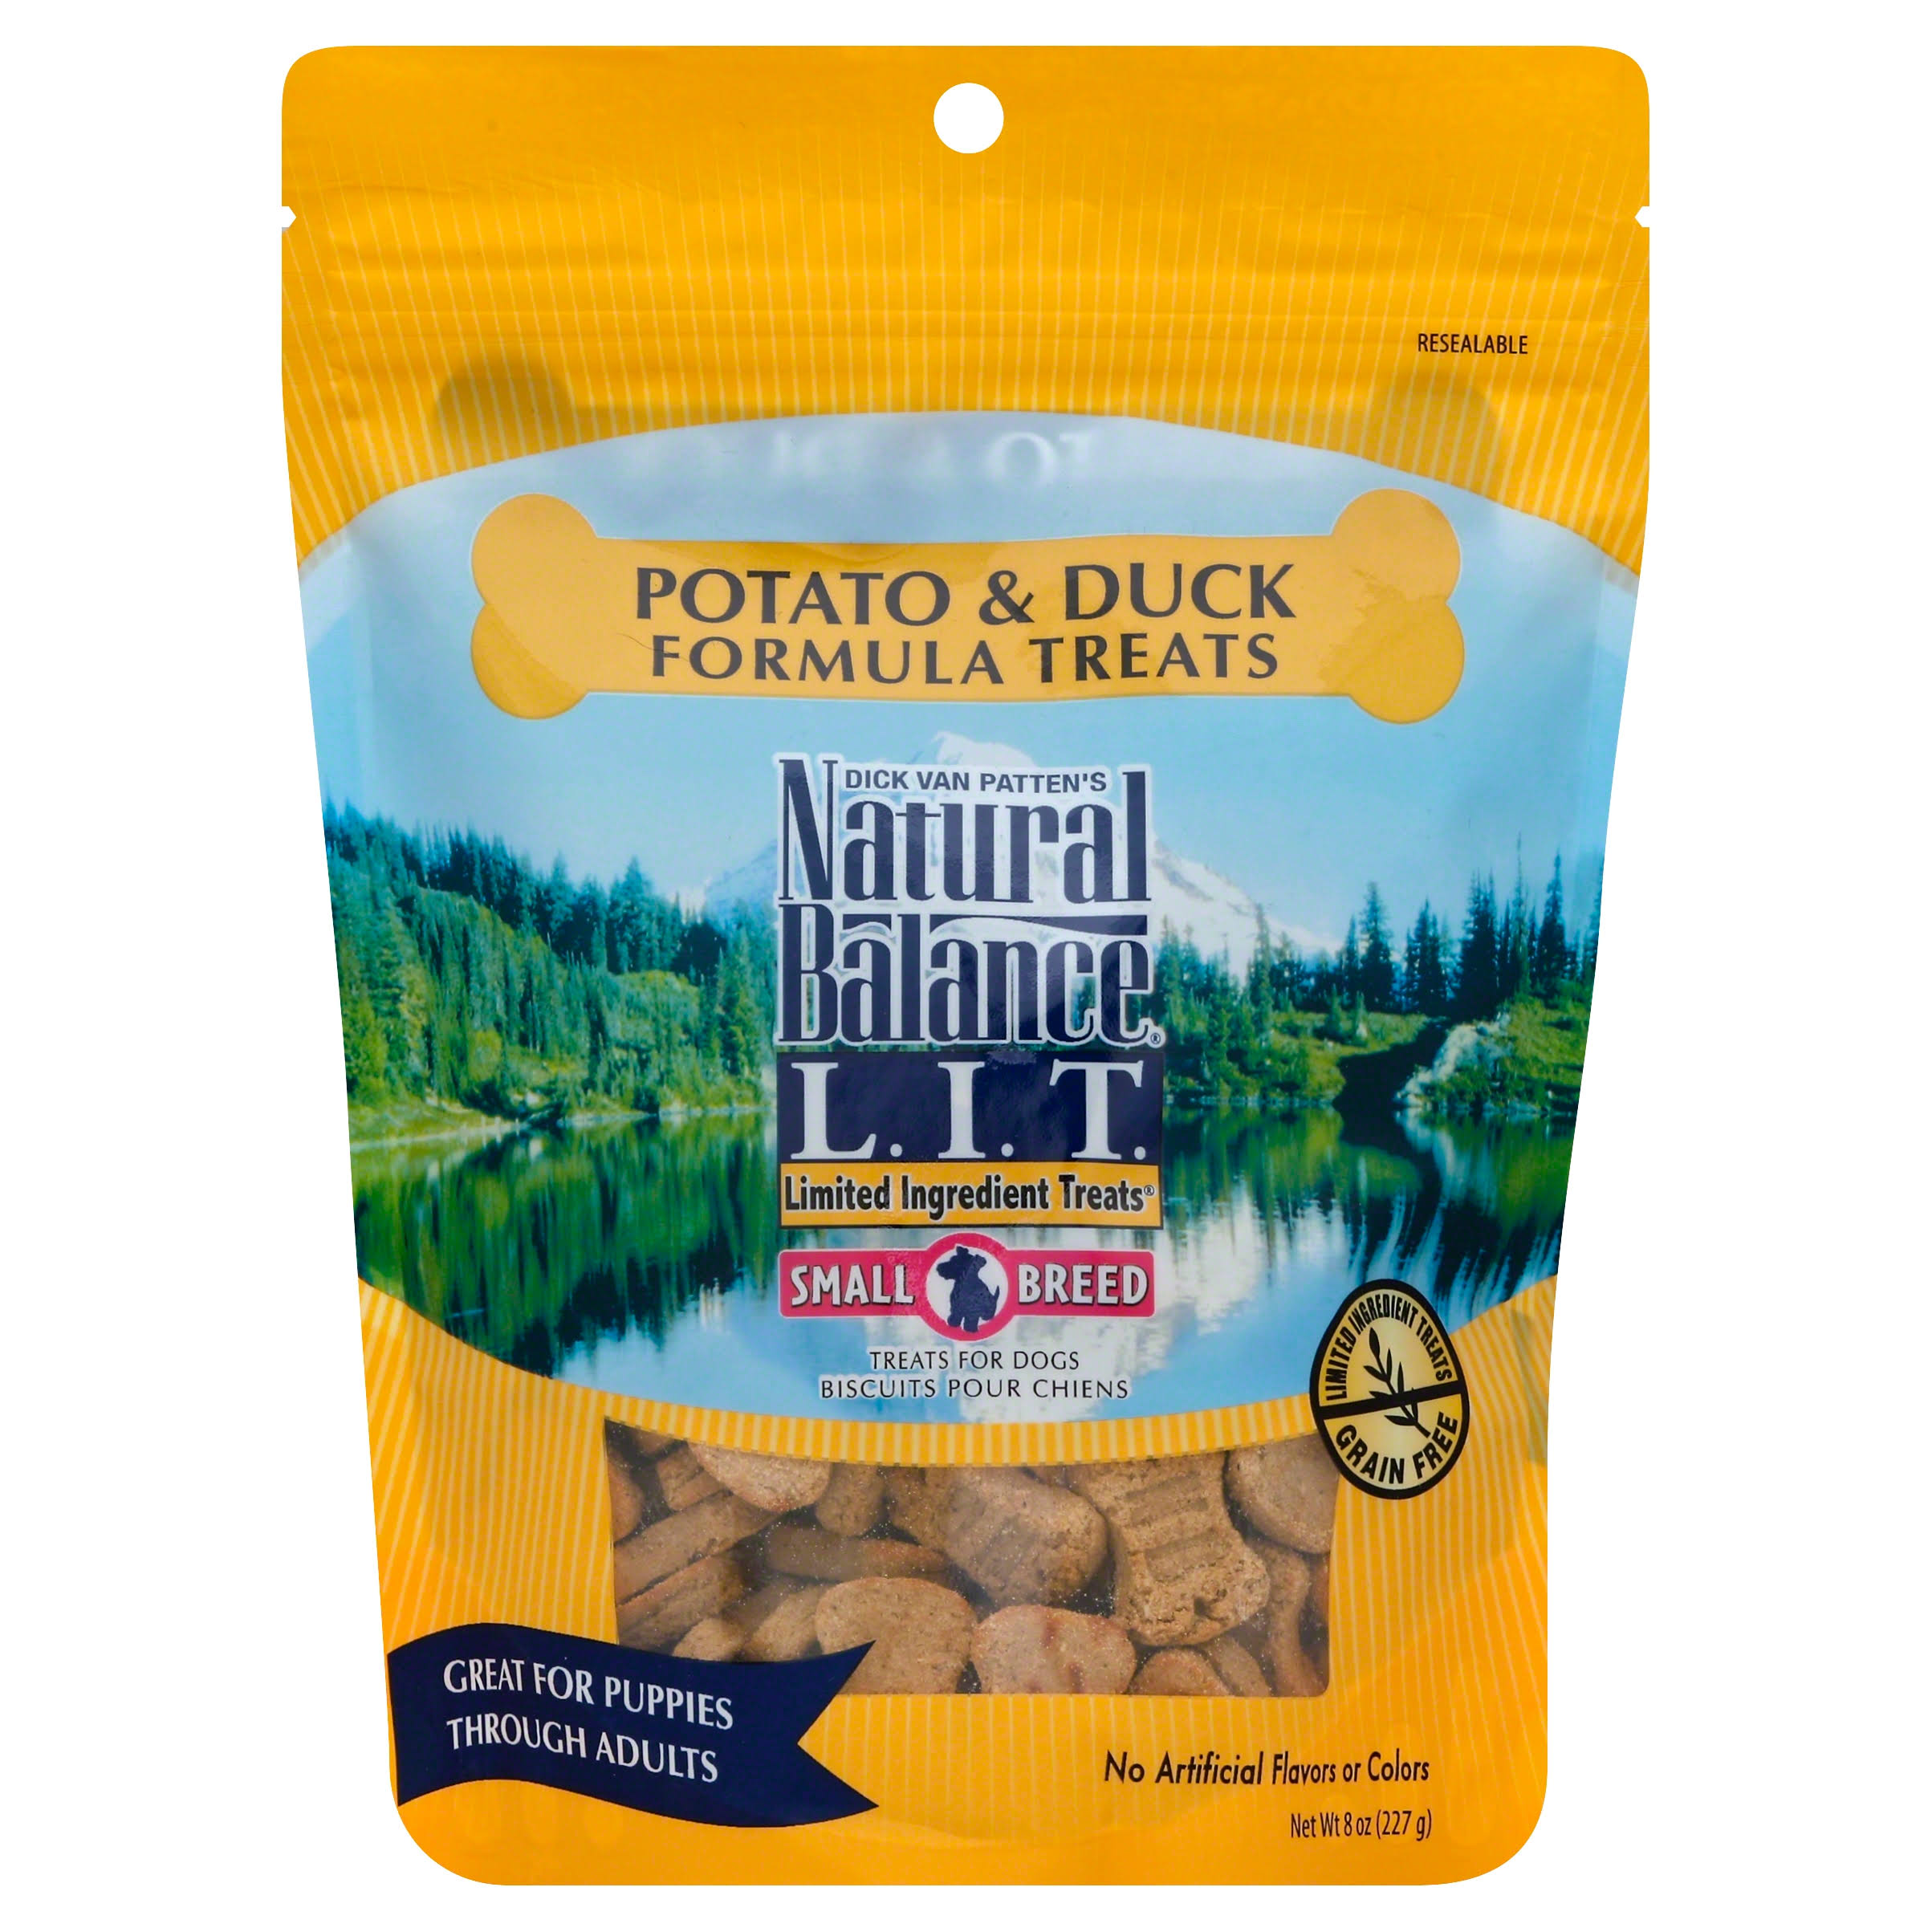 Natural Balance Limited Ingredient Dog Treats - Potato and Duck, 227g